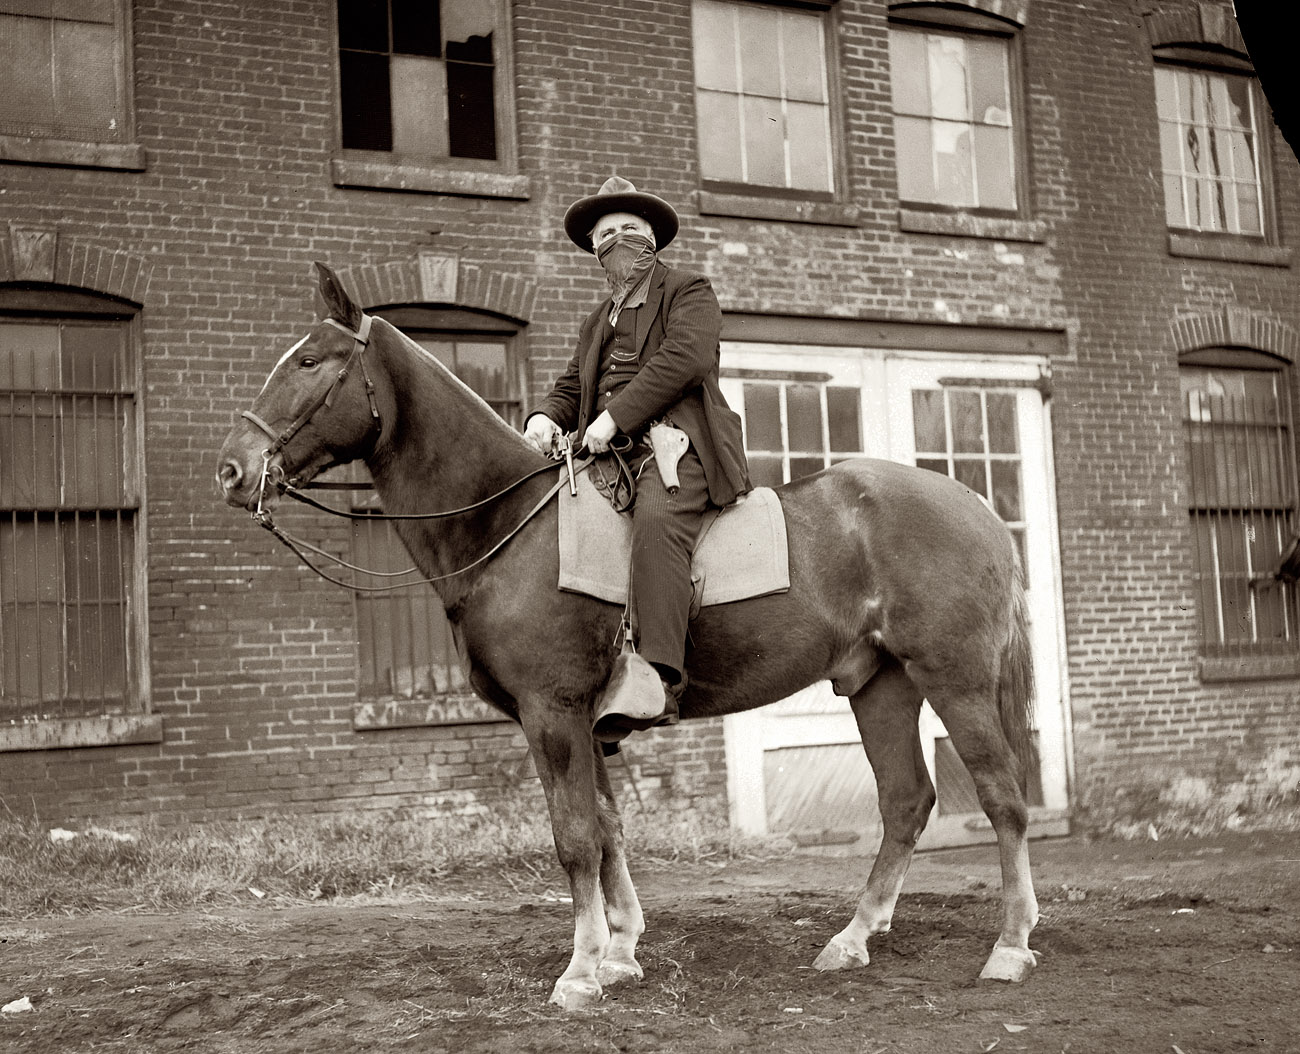 Pat Crowe,  former outlaw,  in 1921. According to newspaper accounts of the day, Mr. Crowe's résumé included bank holdups, train robbery and kidnapping.